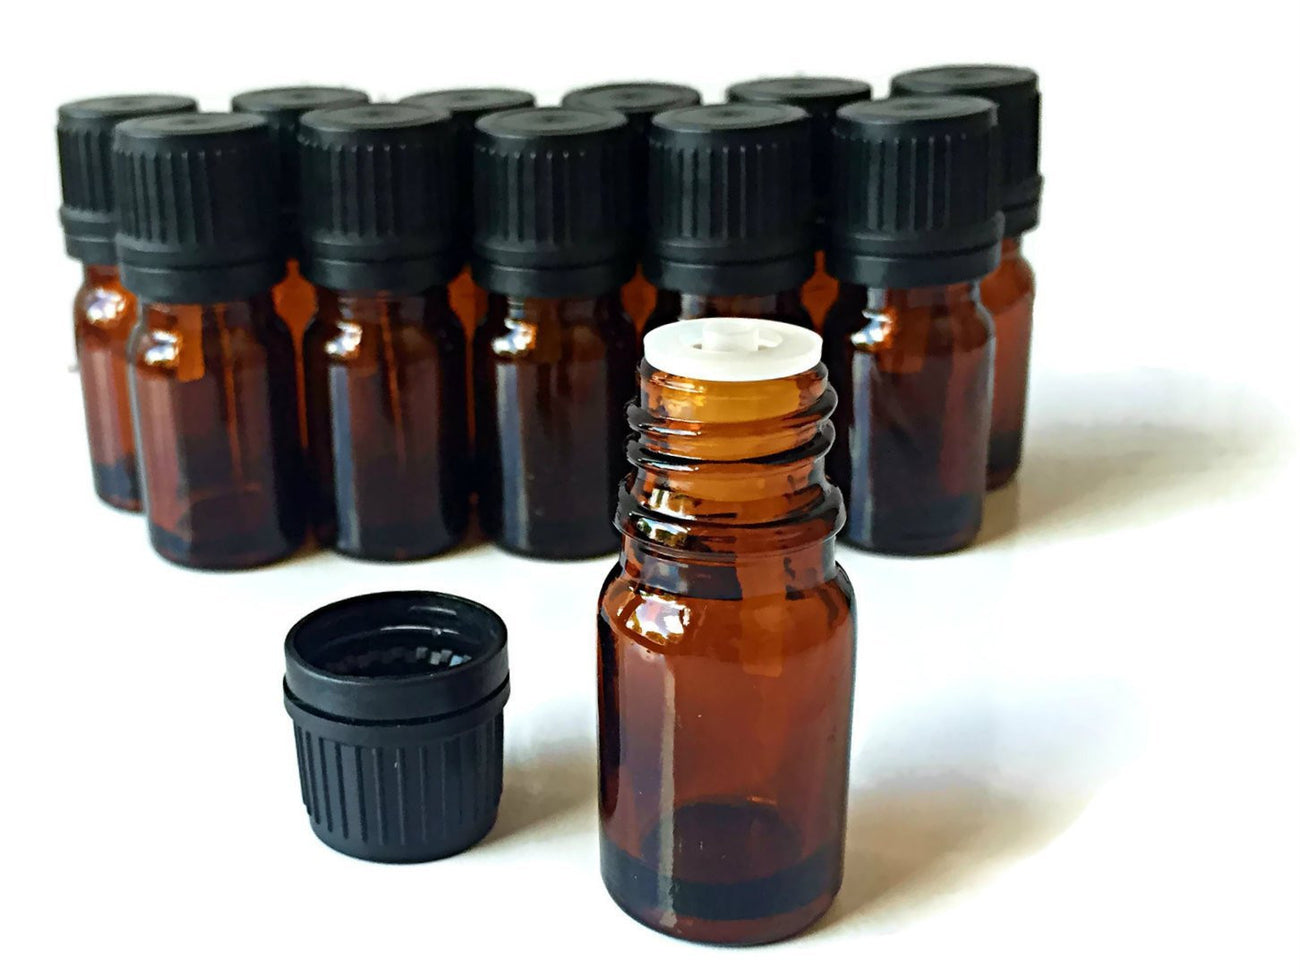 Euro Bottles - 12 pack for Essential Oils by Oils For Everything